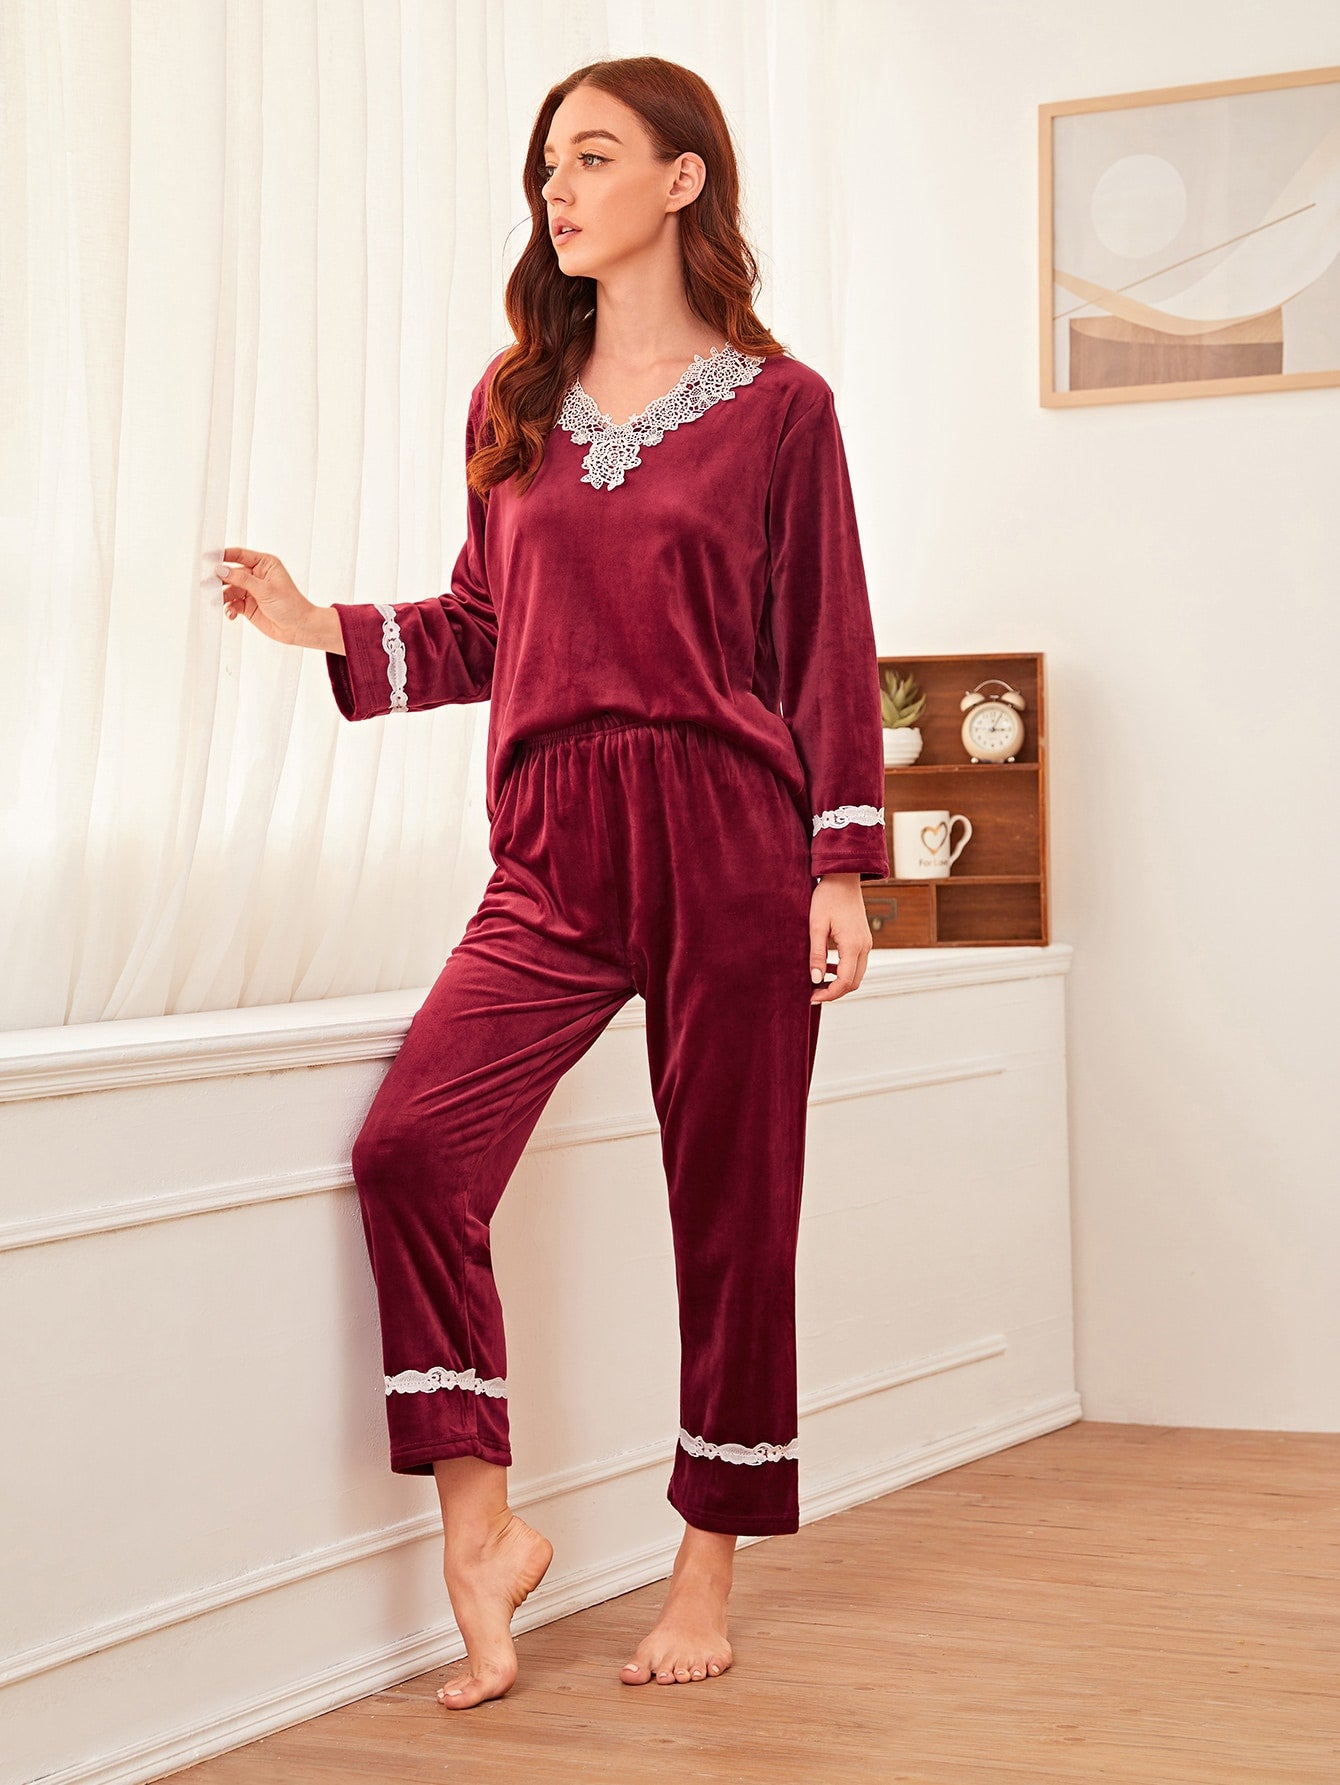 Lace Trim Velvet PJ Set